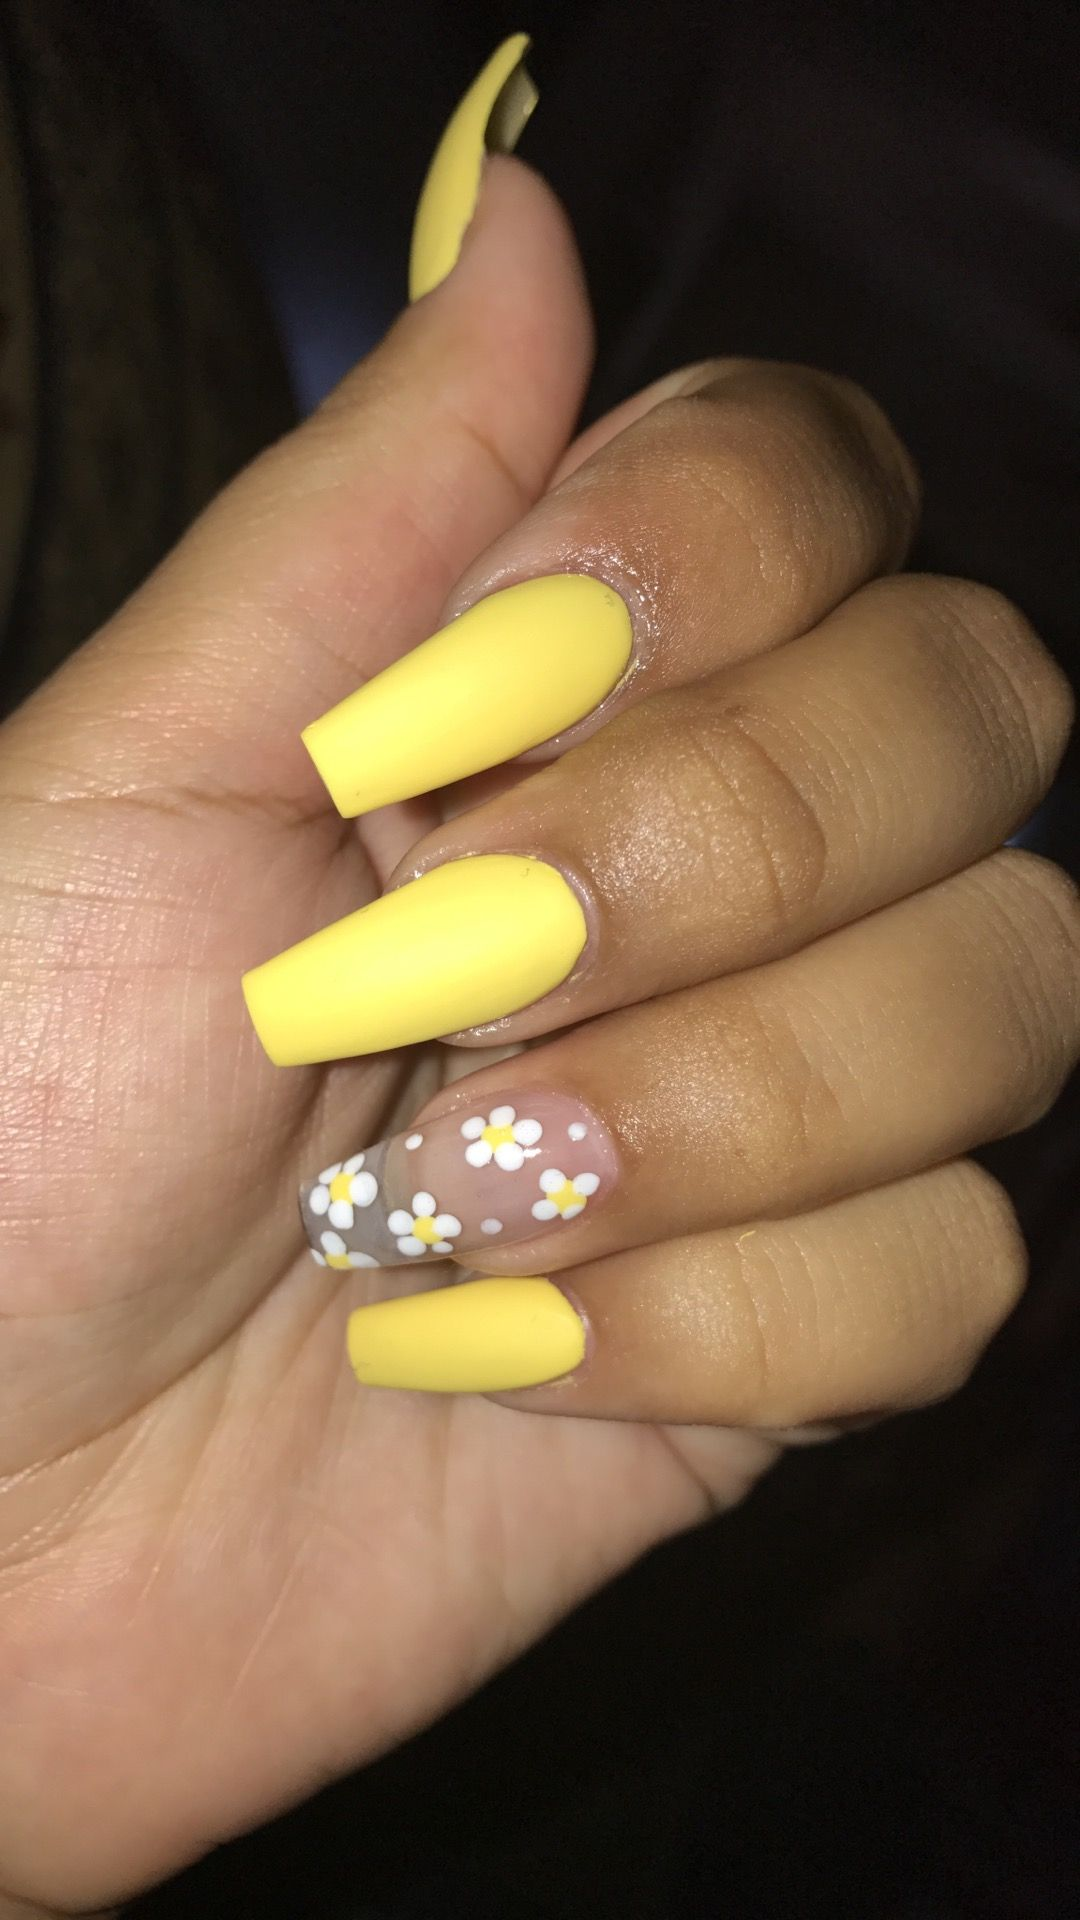 Summer nails | Nails in 2018 | Pinterest | Nails, Acrylic ...